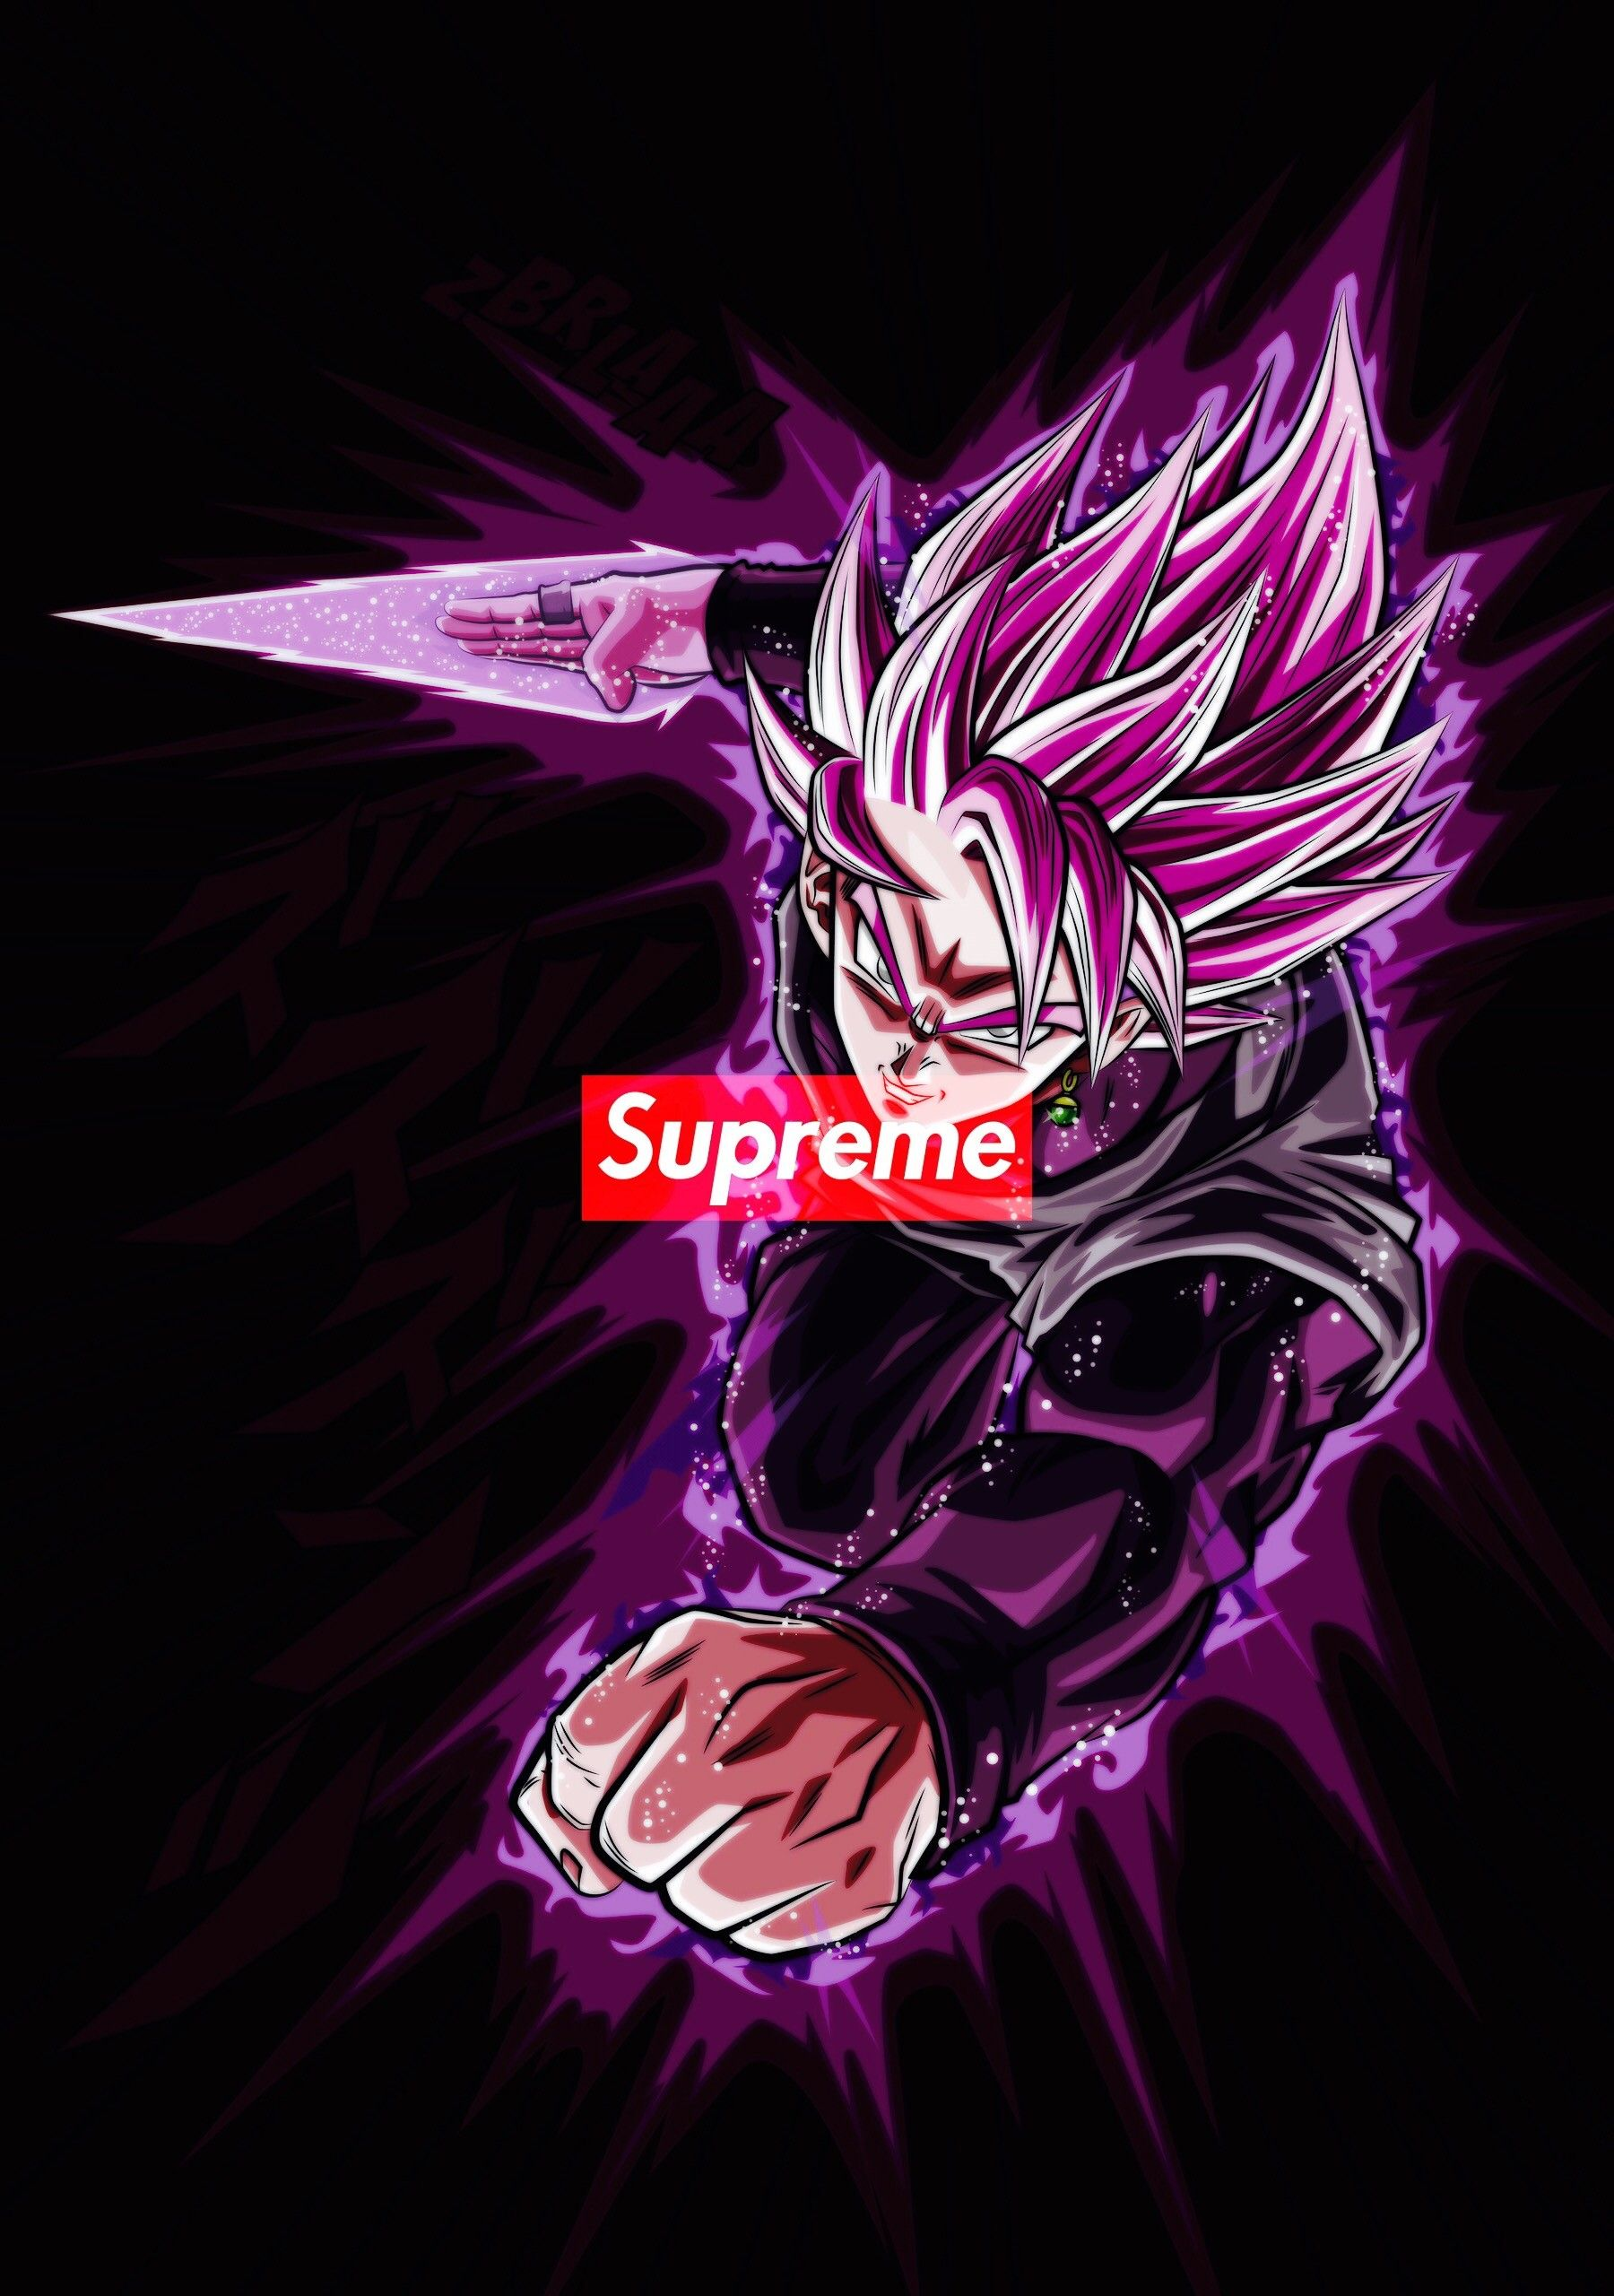 """1920x1080 Supreme wallpaper ·① Download free High Resolution backgrounds for ..."""">"""